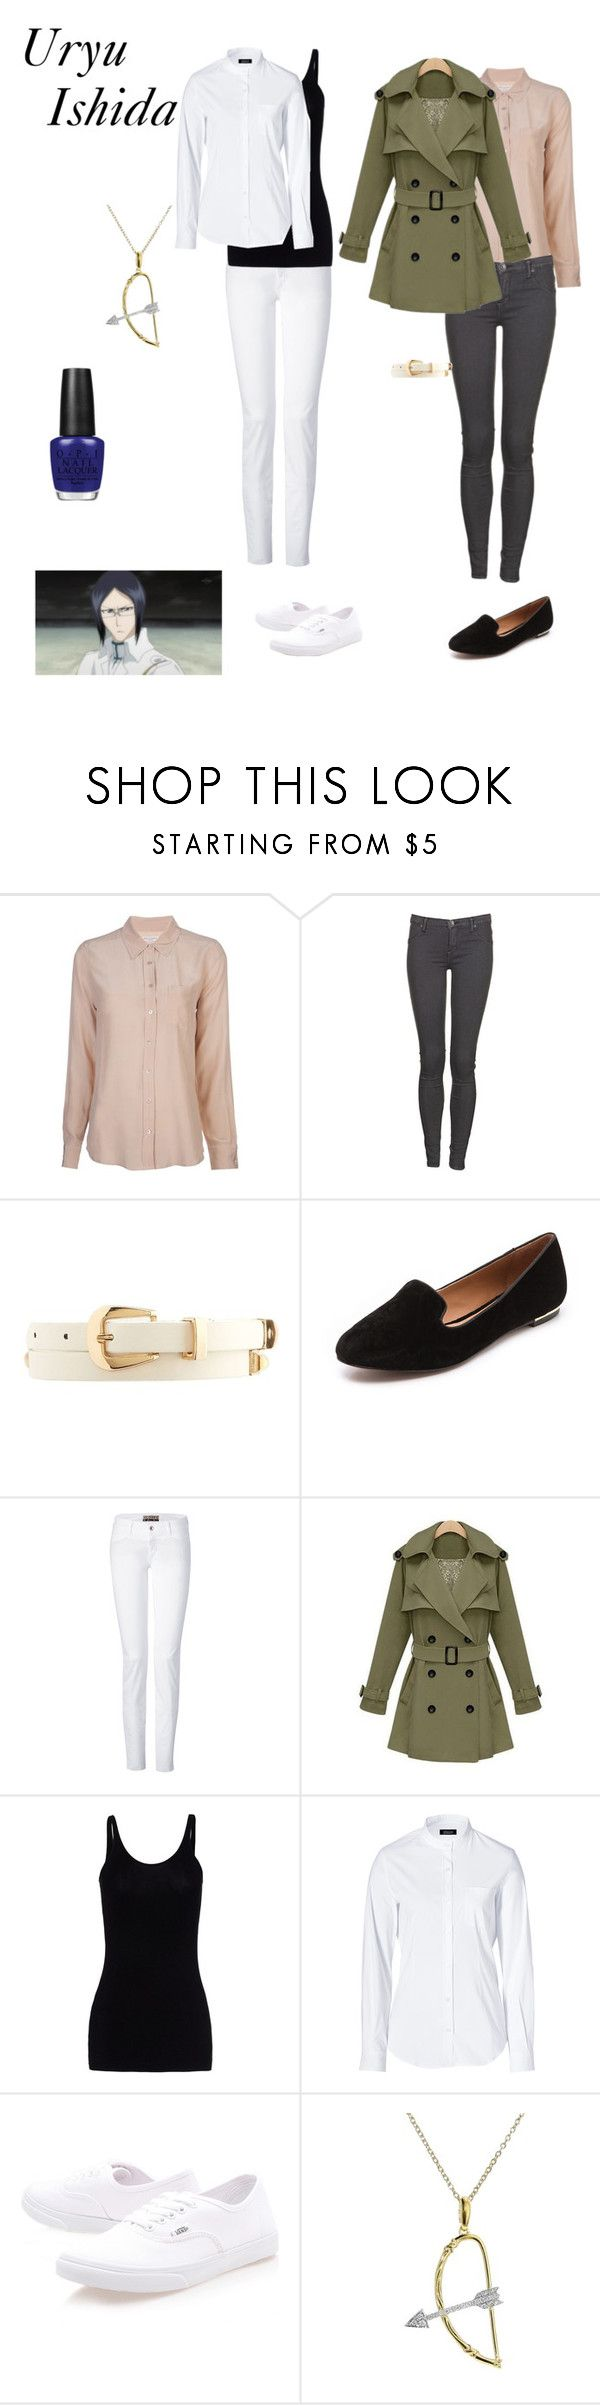 """Uryū Ishida"" by pumpkinpanda324 ❤ liked on Polyvore featuring Equipment, Dr. Denim, Charlotte Russe, Rachel Zoe, Closed, T By Alexander Wang, Steffen Schraut, Vans, India Hicks and OPI"